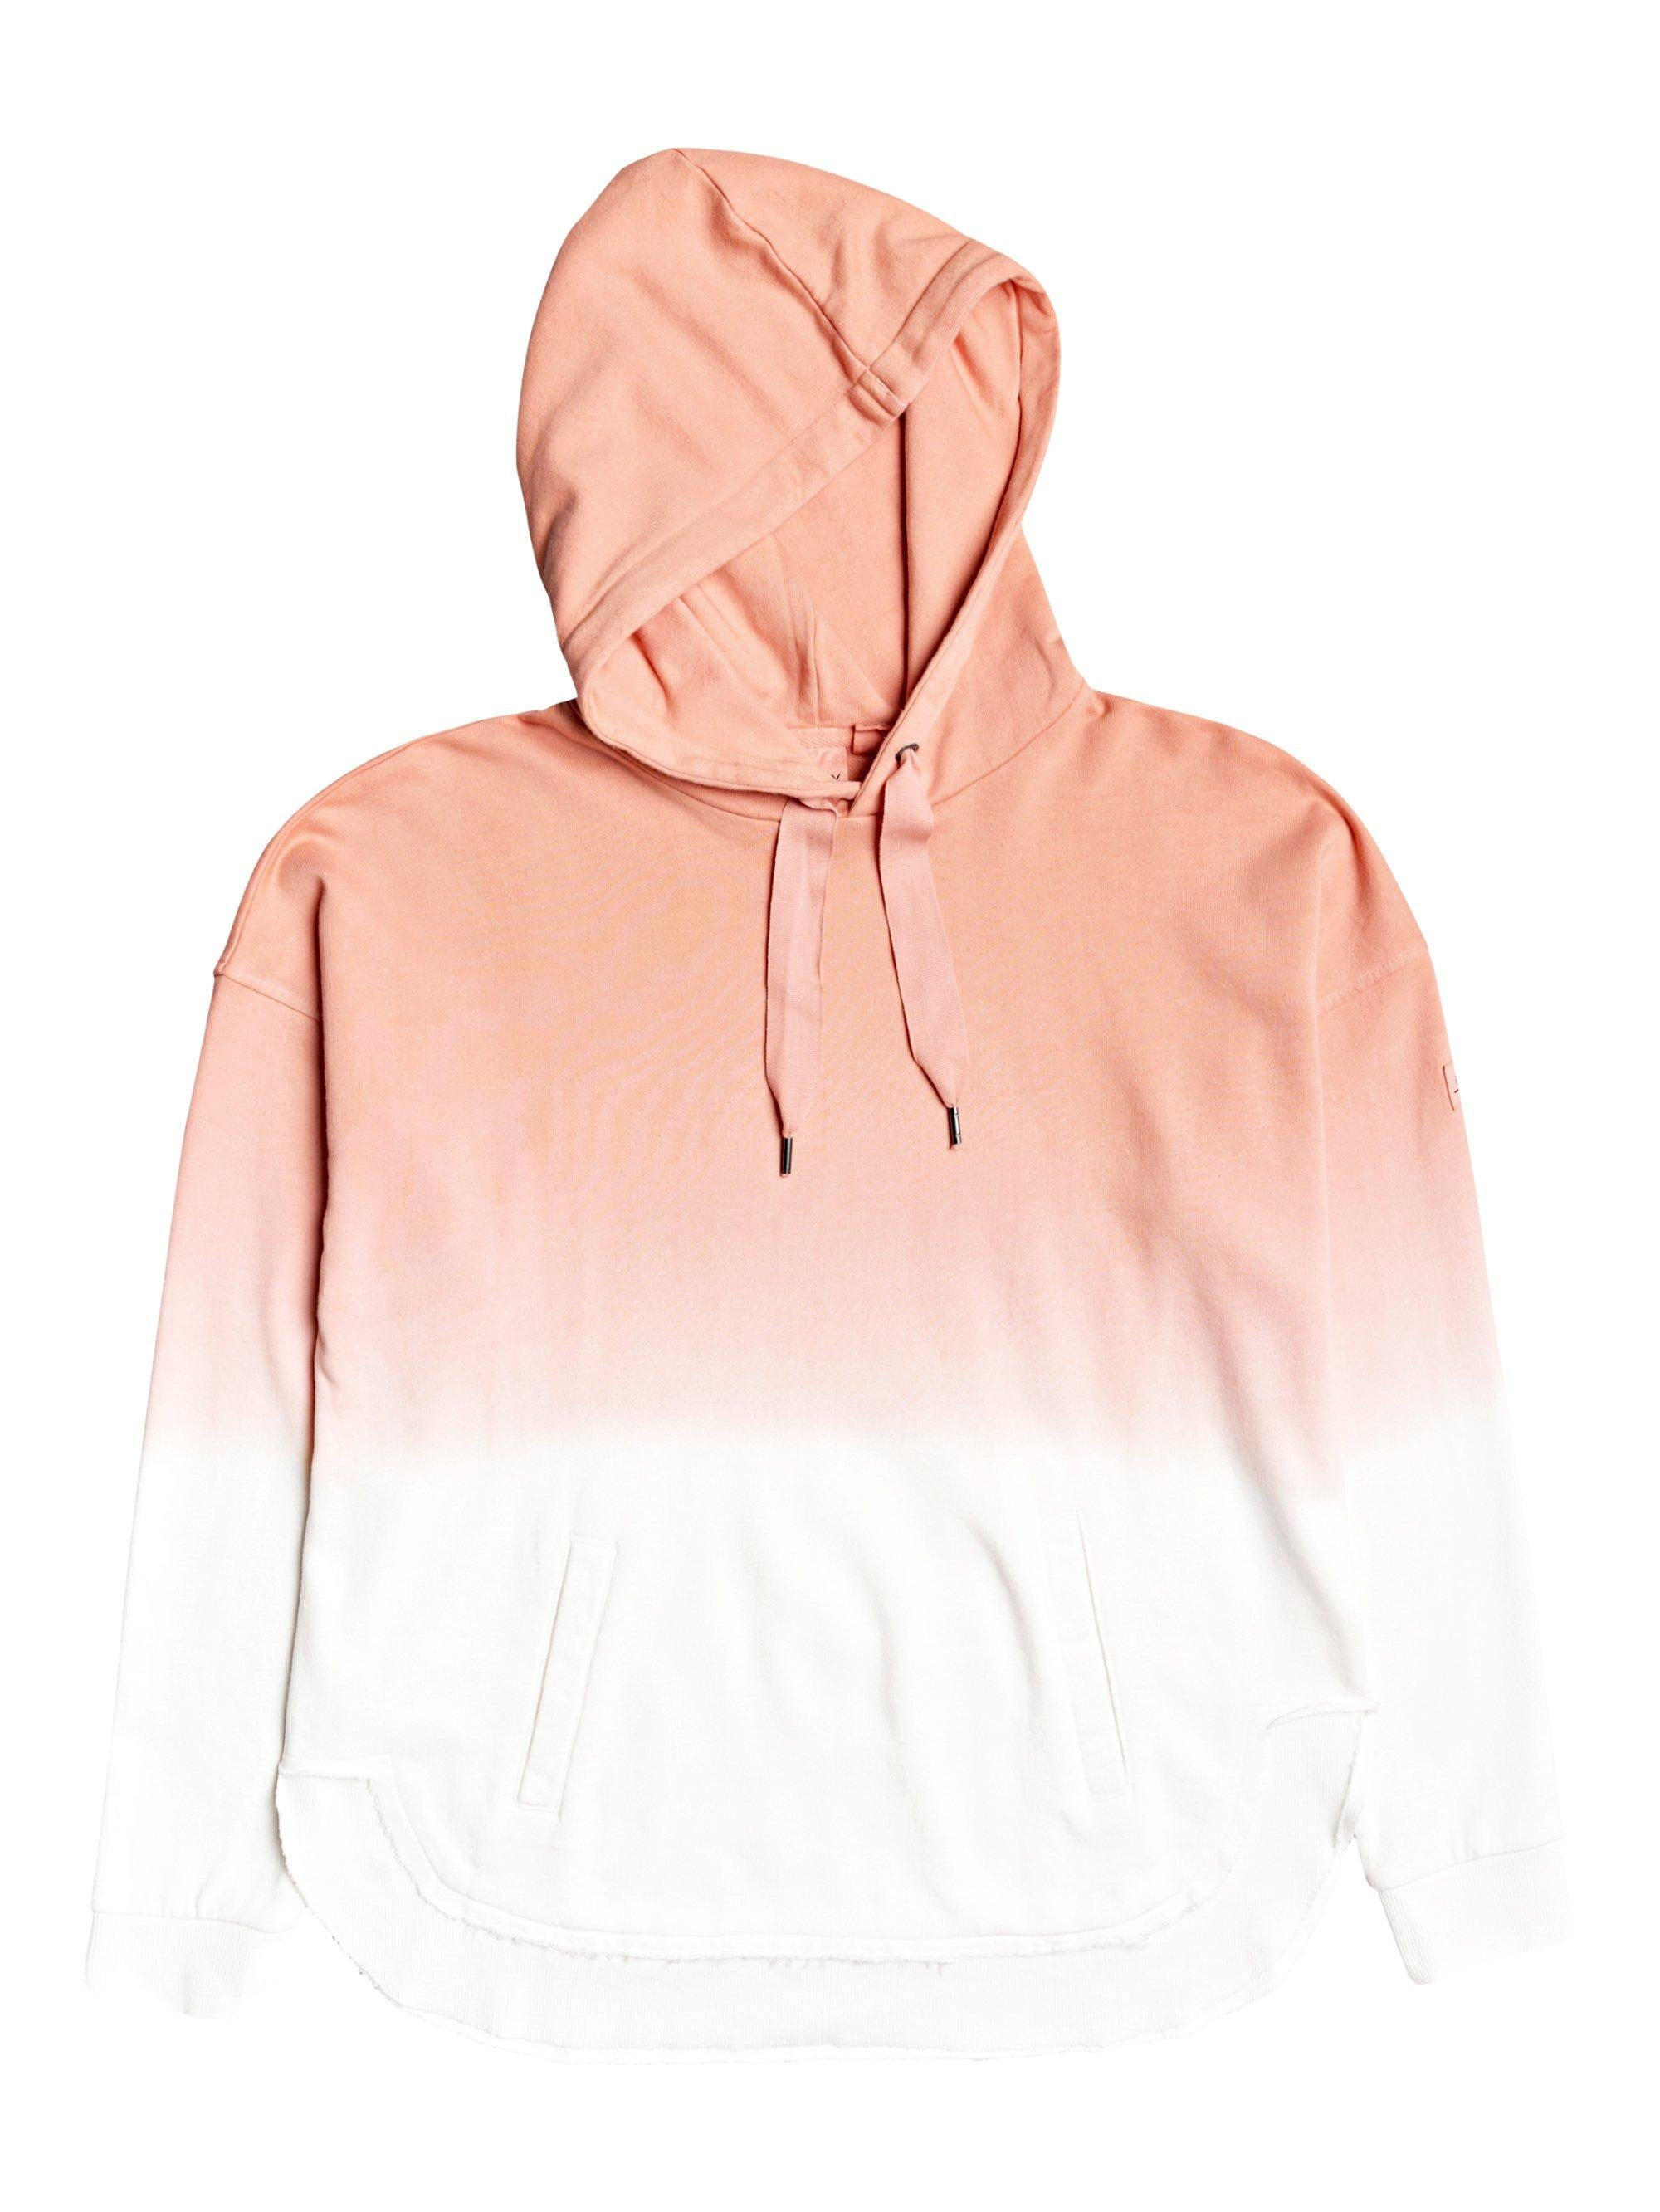 Roxy Time Has Come Poncho Hoodie - 88 Gear